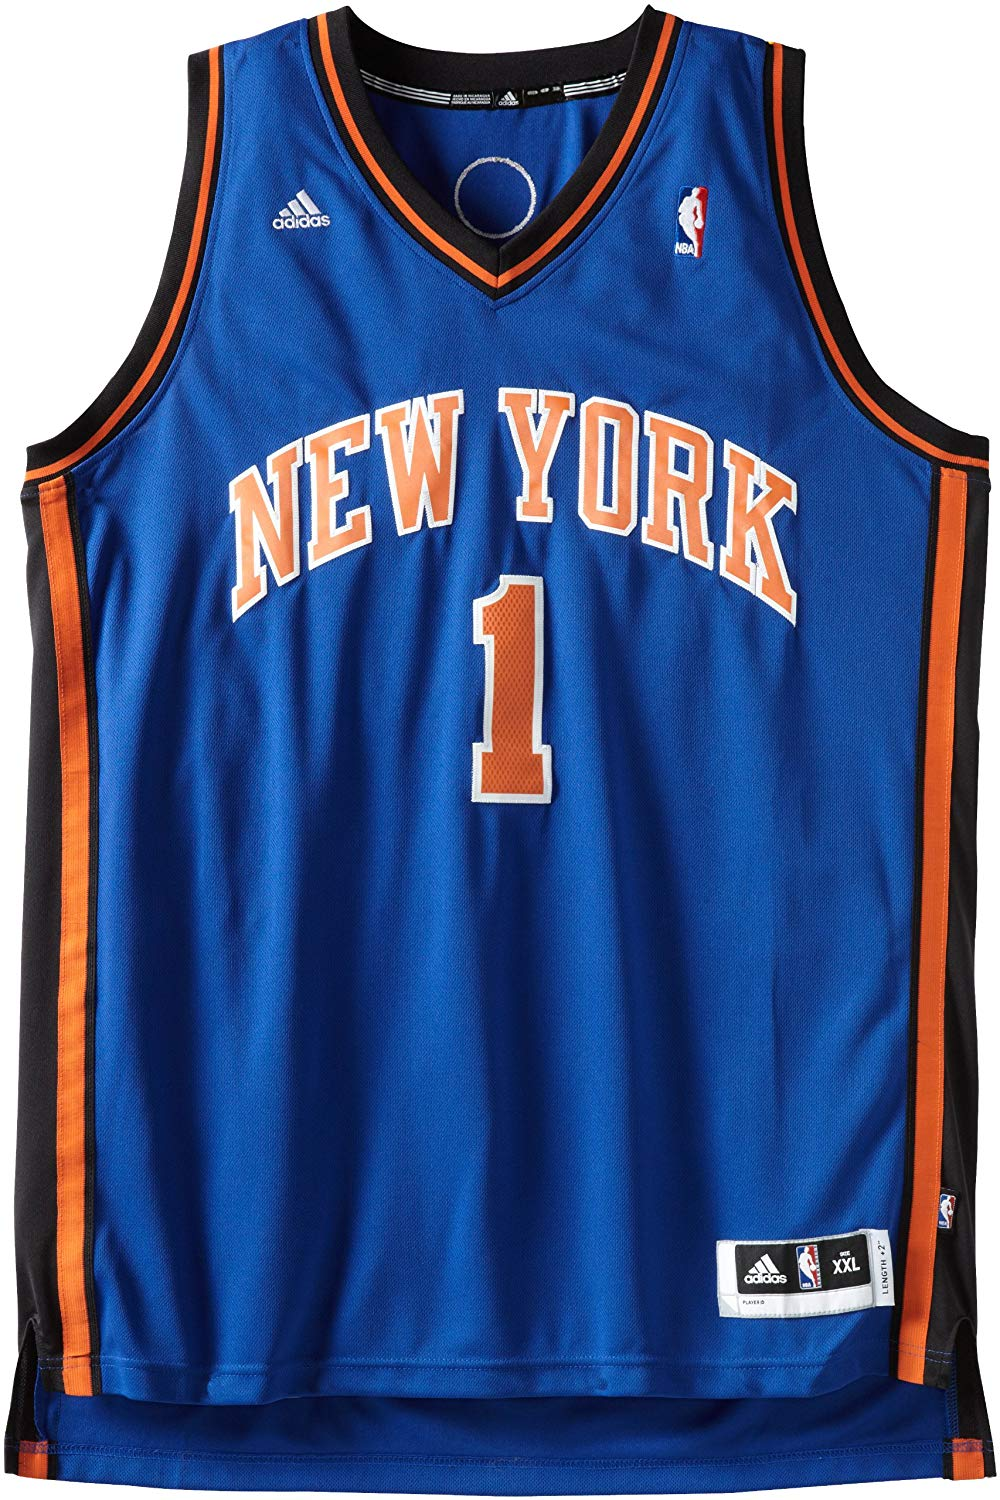 51f3cfce79e adidas Men's New York Knicks Stoudemire Jersey - Large - Trade Sports